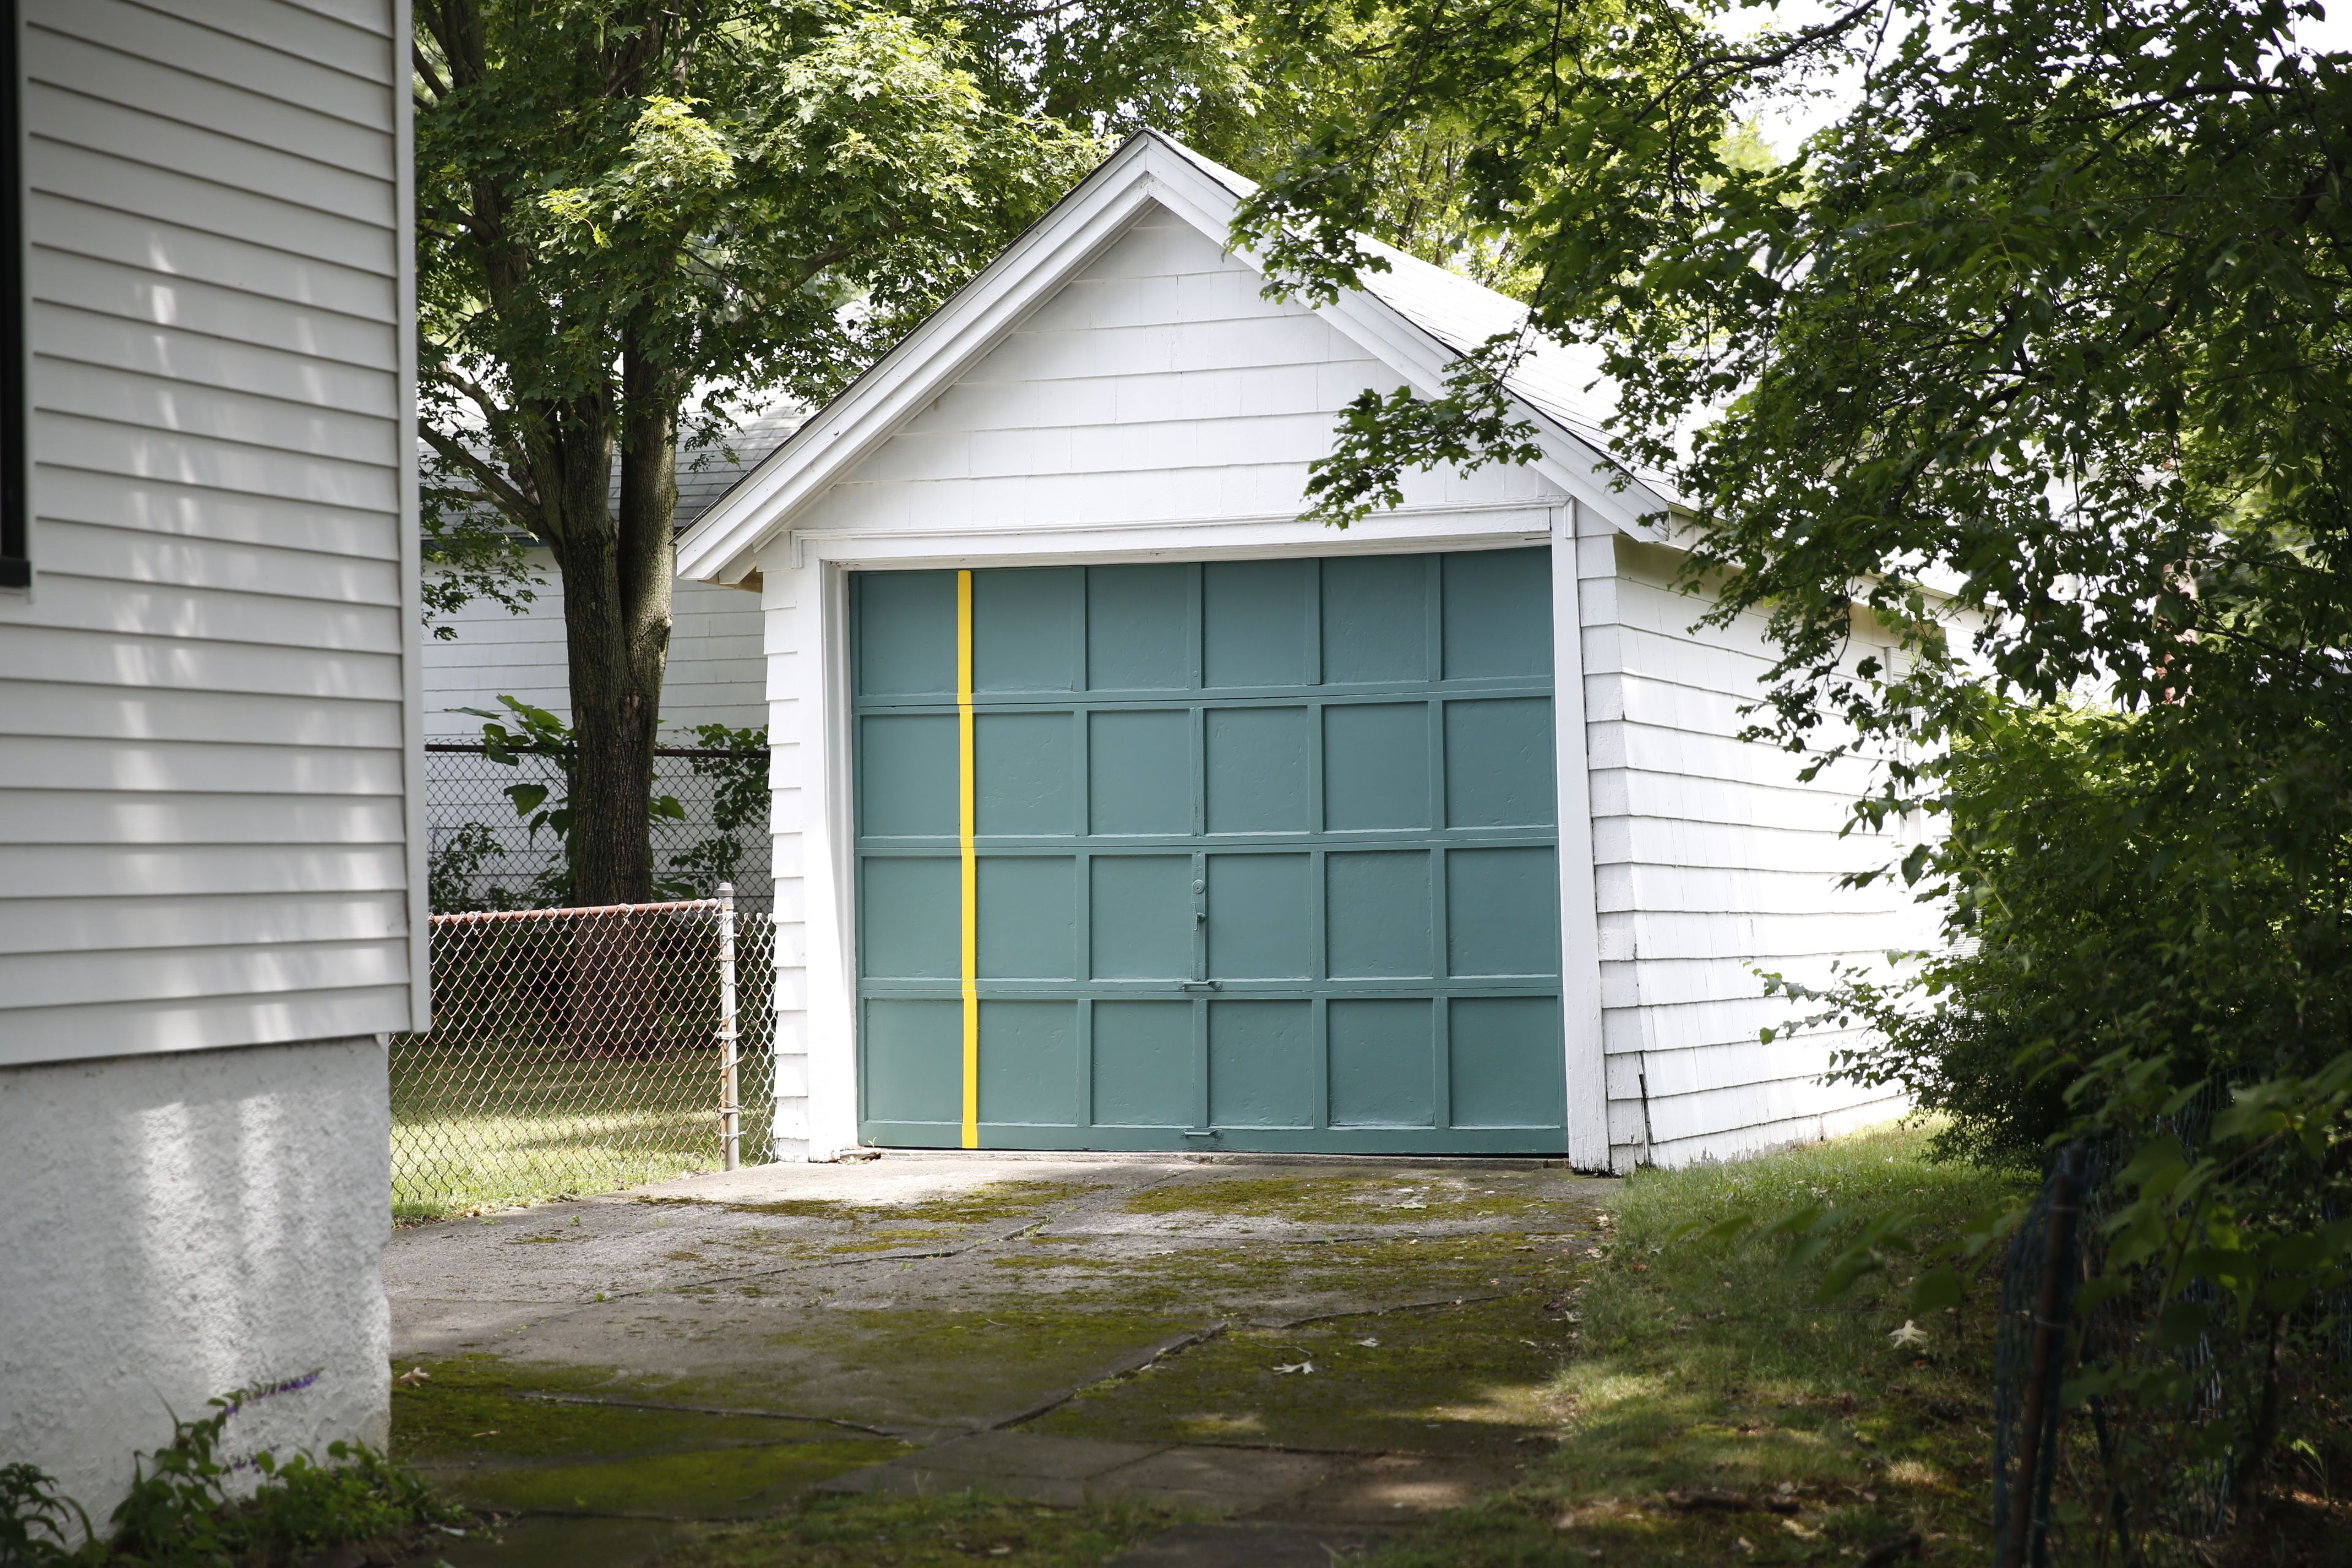 Garage paint ideas green - Find This Pin And More On Red Sox Paint Colors Garage Painted With Green